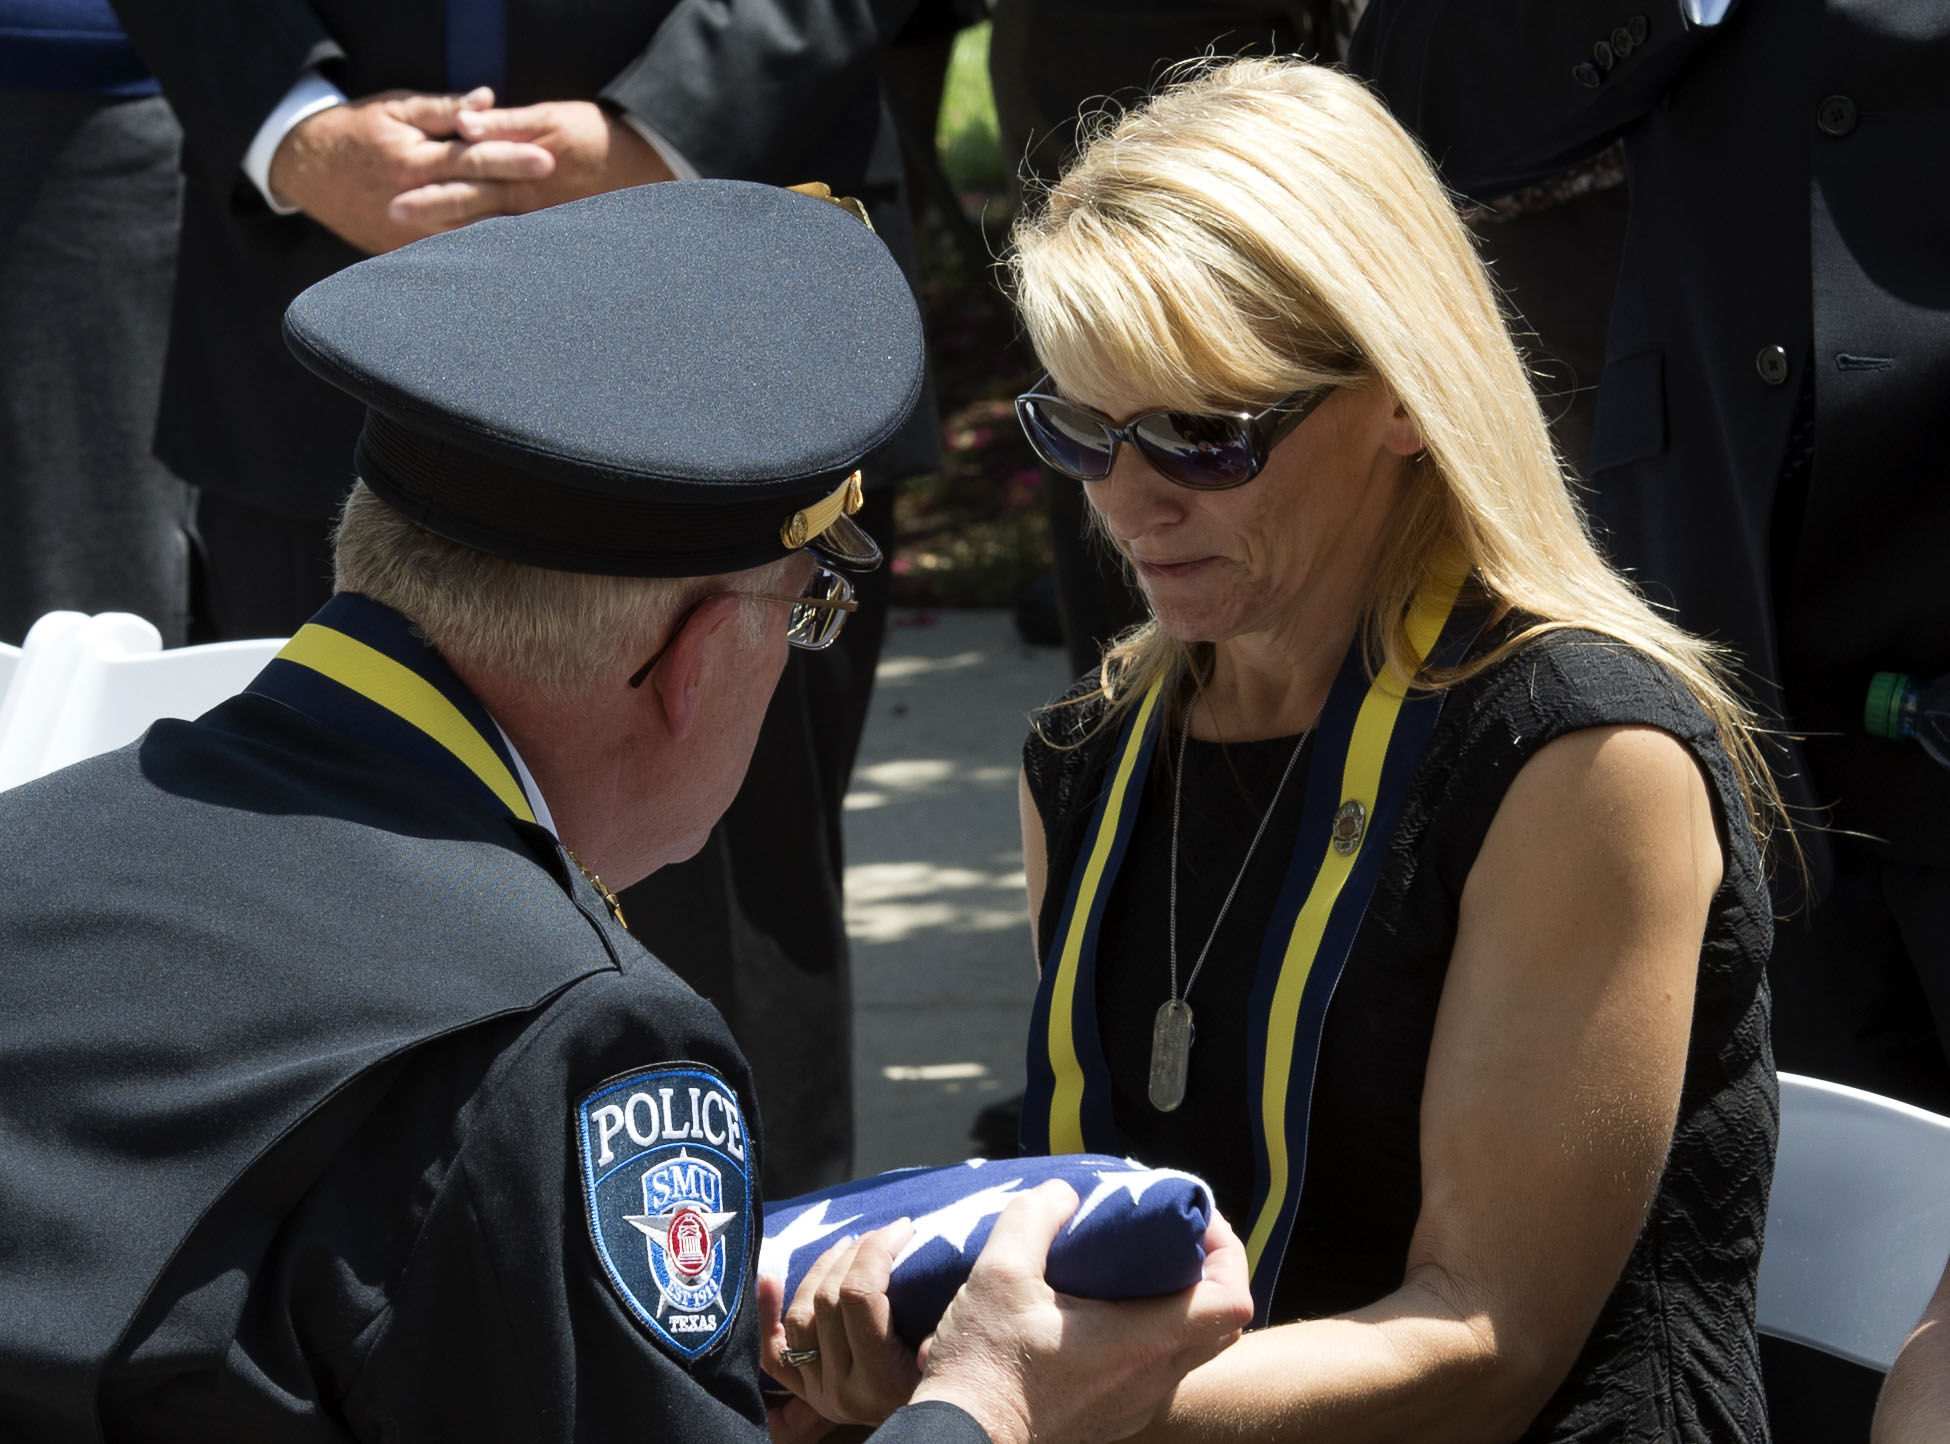 U.S. flag presented to Tiffany McCullers at memorial service for Mark McCullers on 28 July 2016